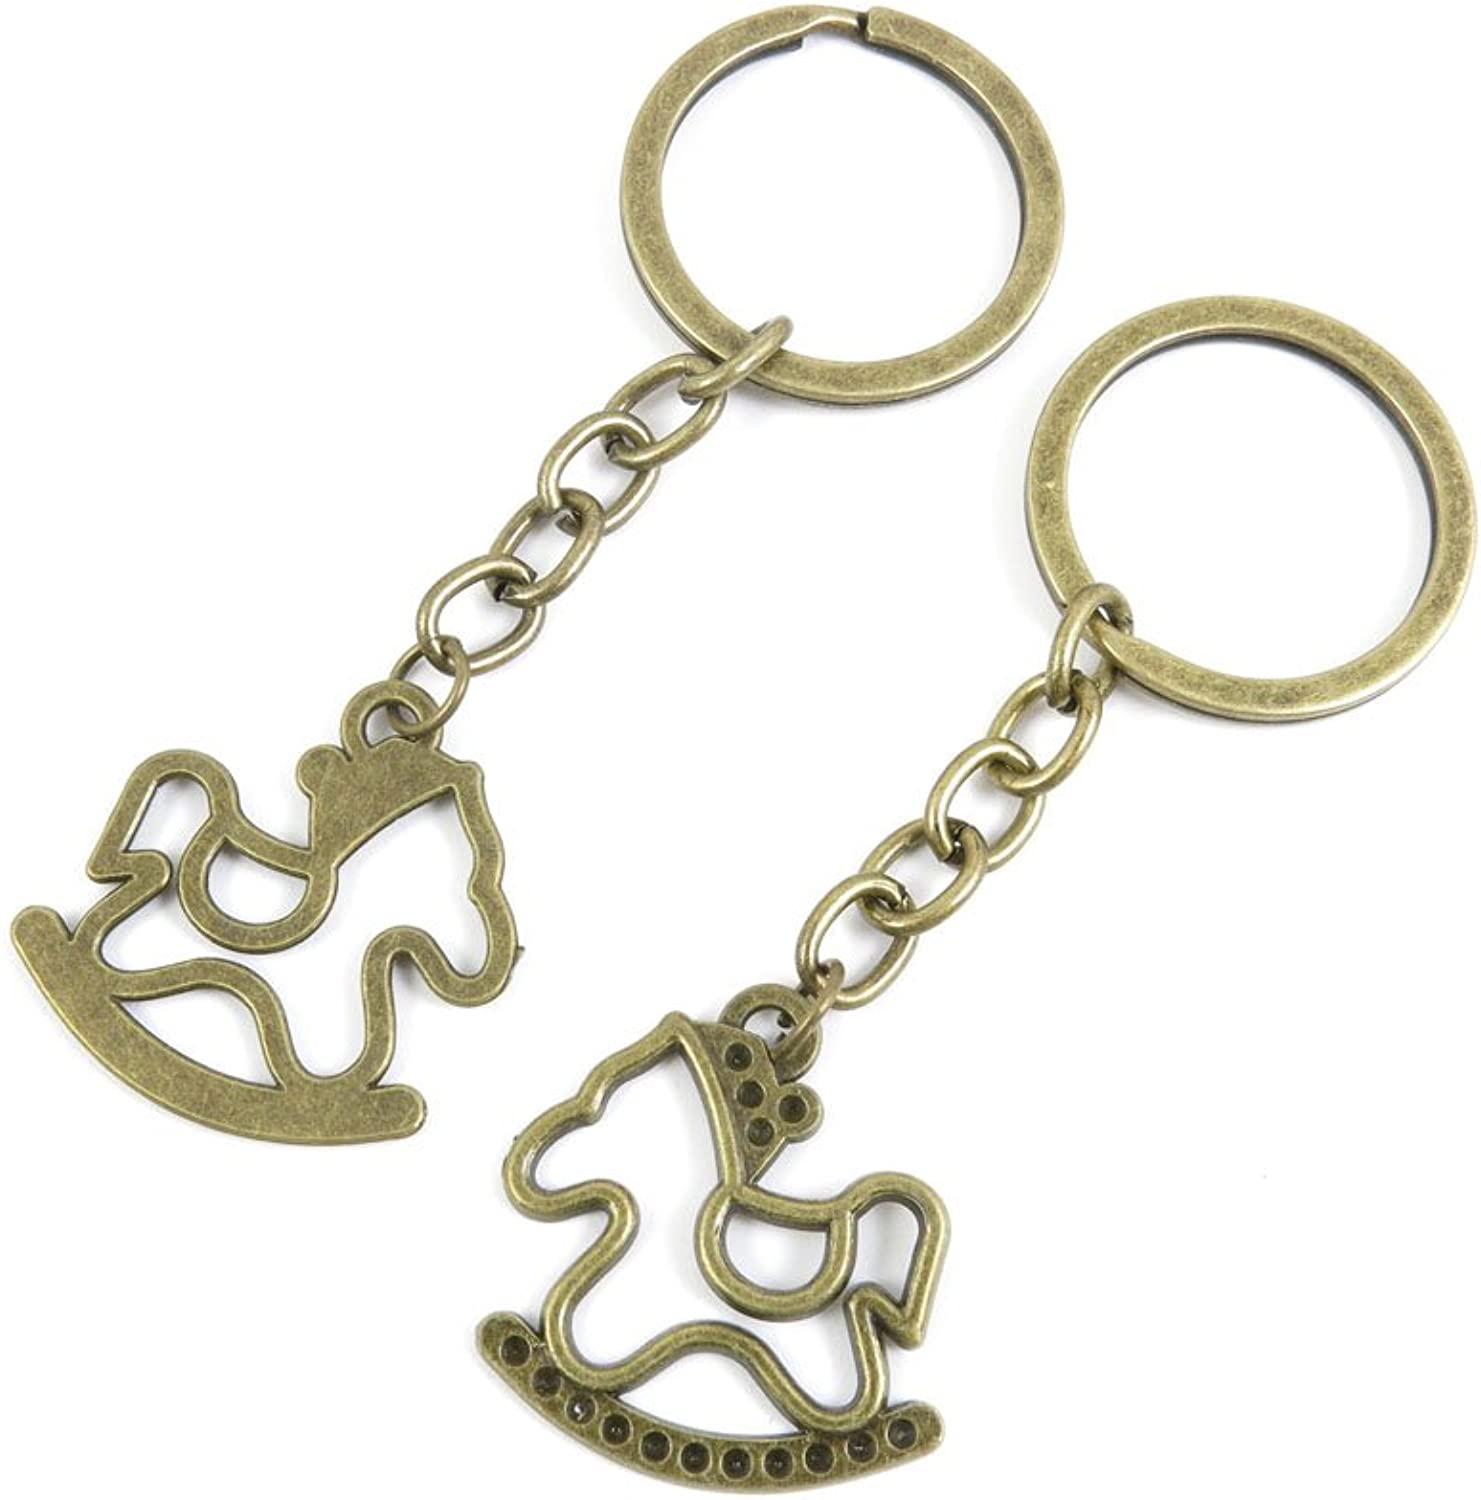 100 PCS Keyrings Keychains Key Ring Chains Tags Jewelry Findings Clasps Buckles Supplies W1TH4 Rocking Horse